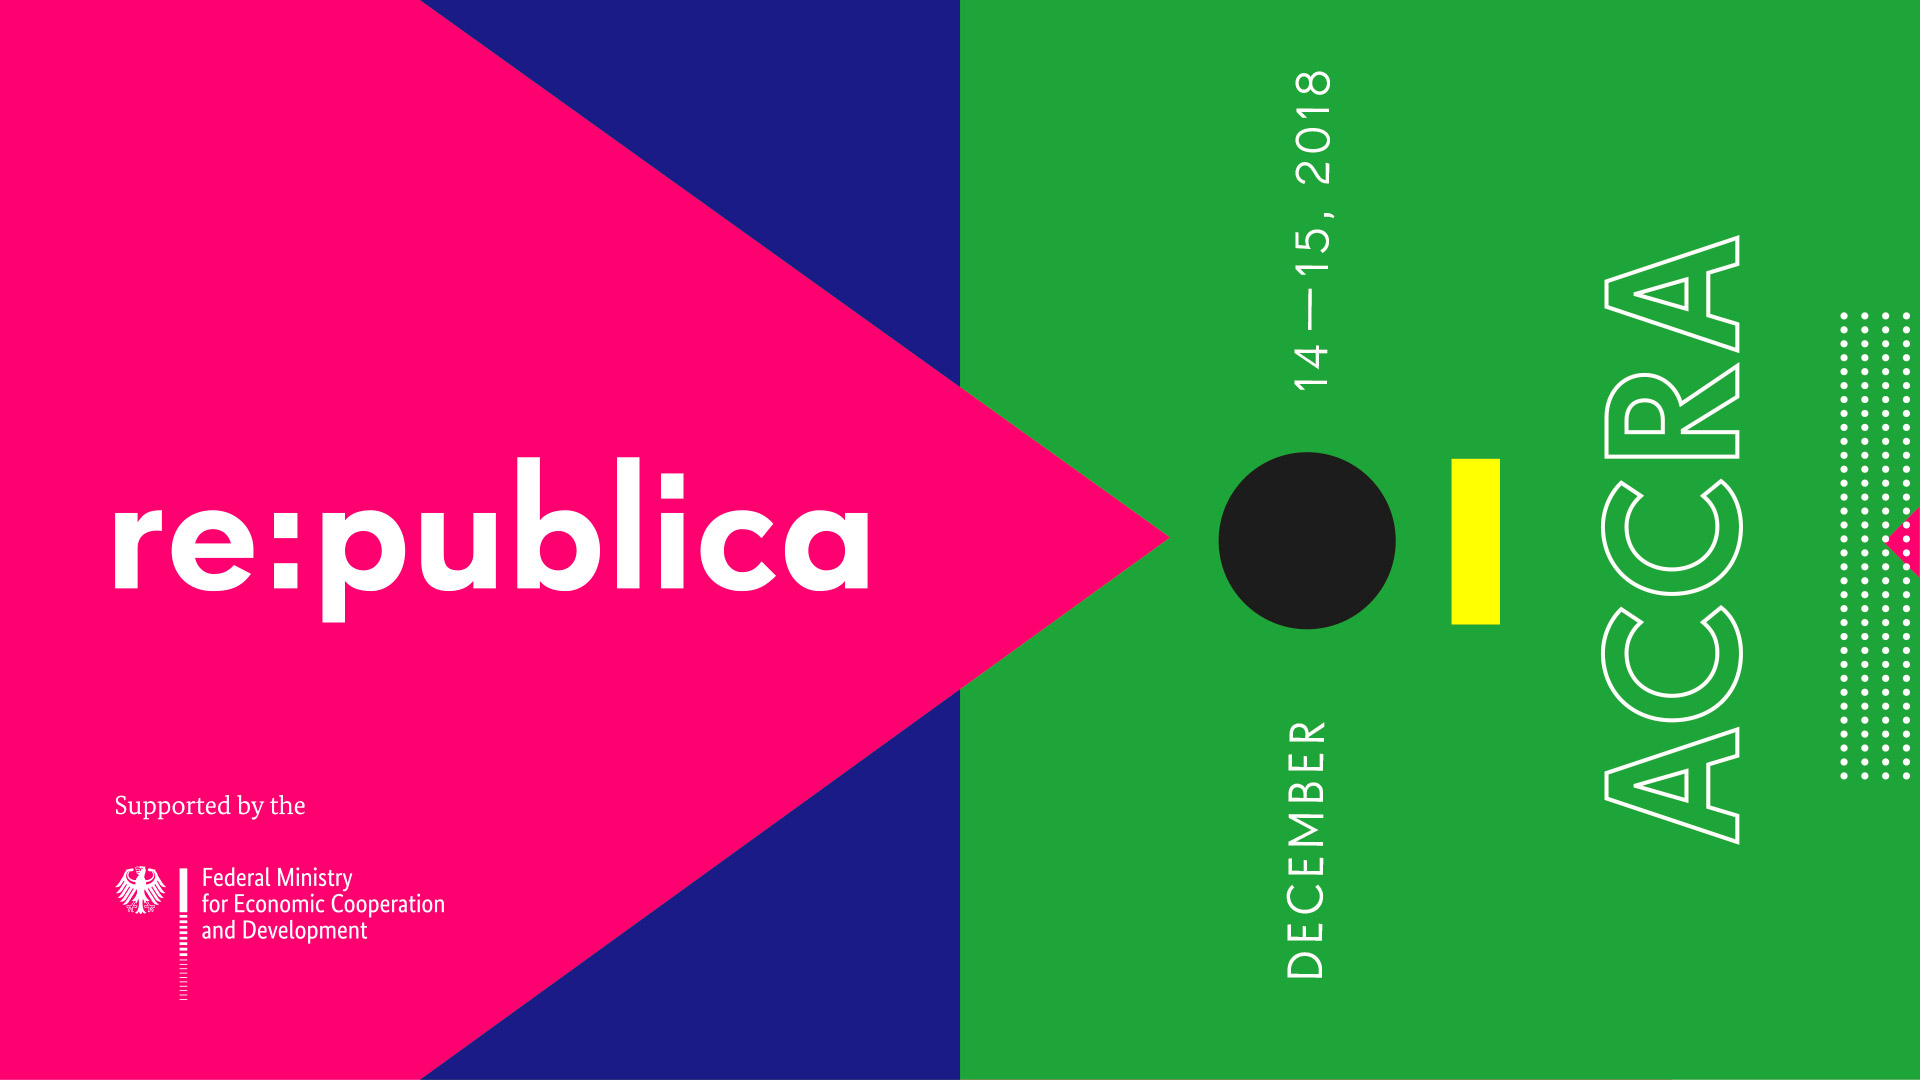 symposia within re:publica 2018